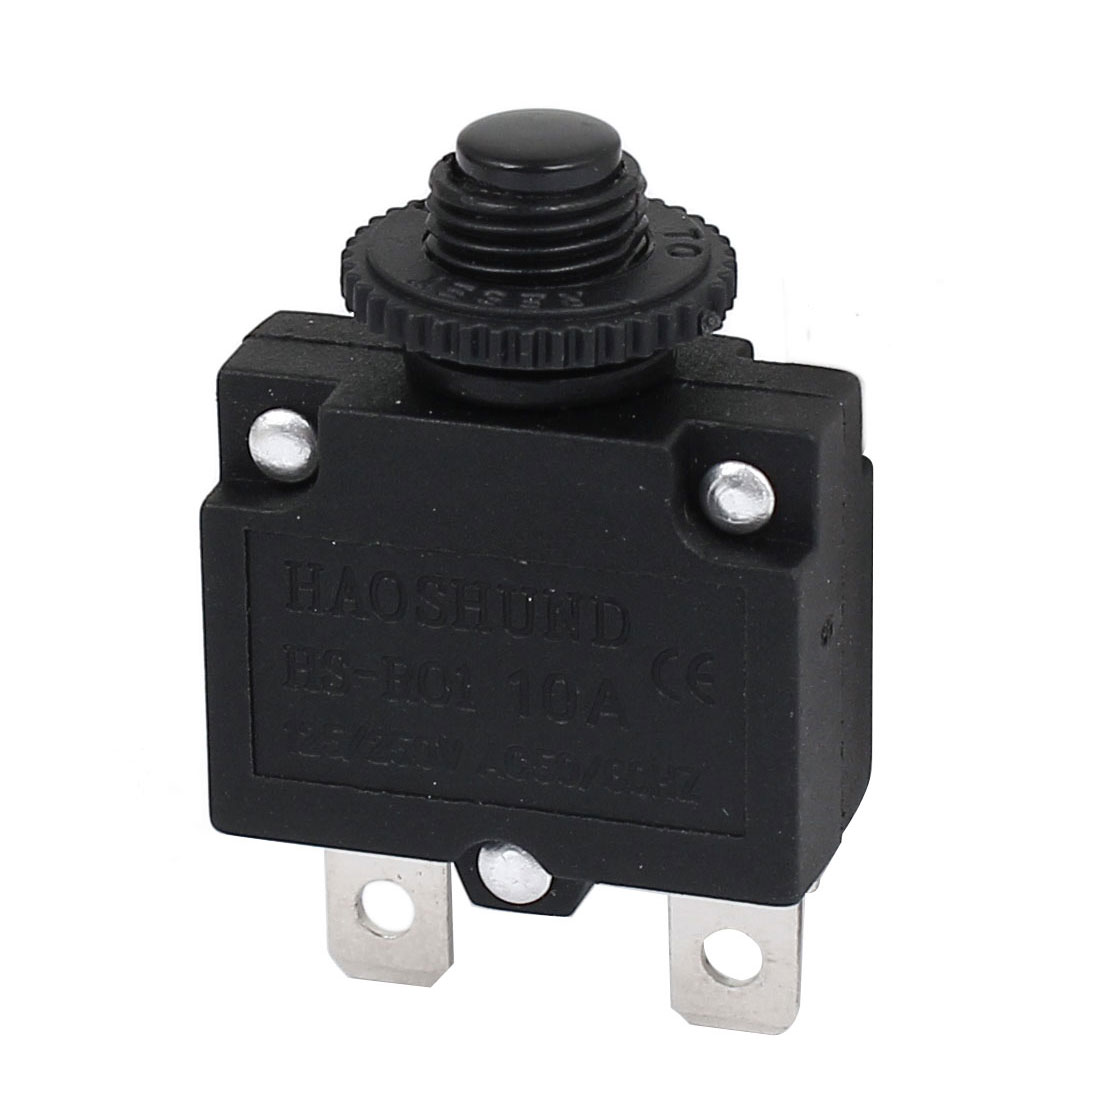 AC 125/250V 10A Circuit Breaker Current Overload Protector Switch Black